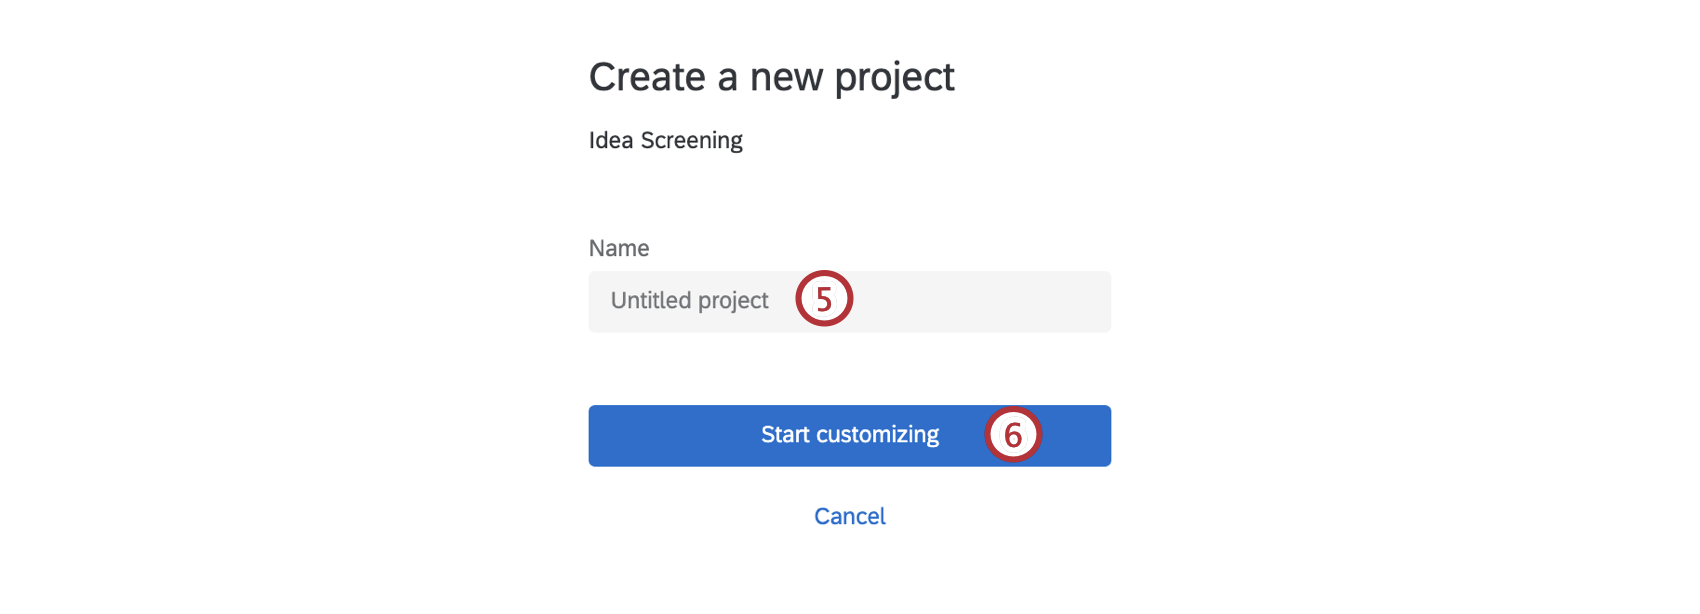 Field for name, then button at bottom